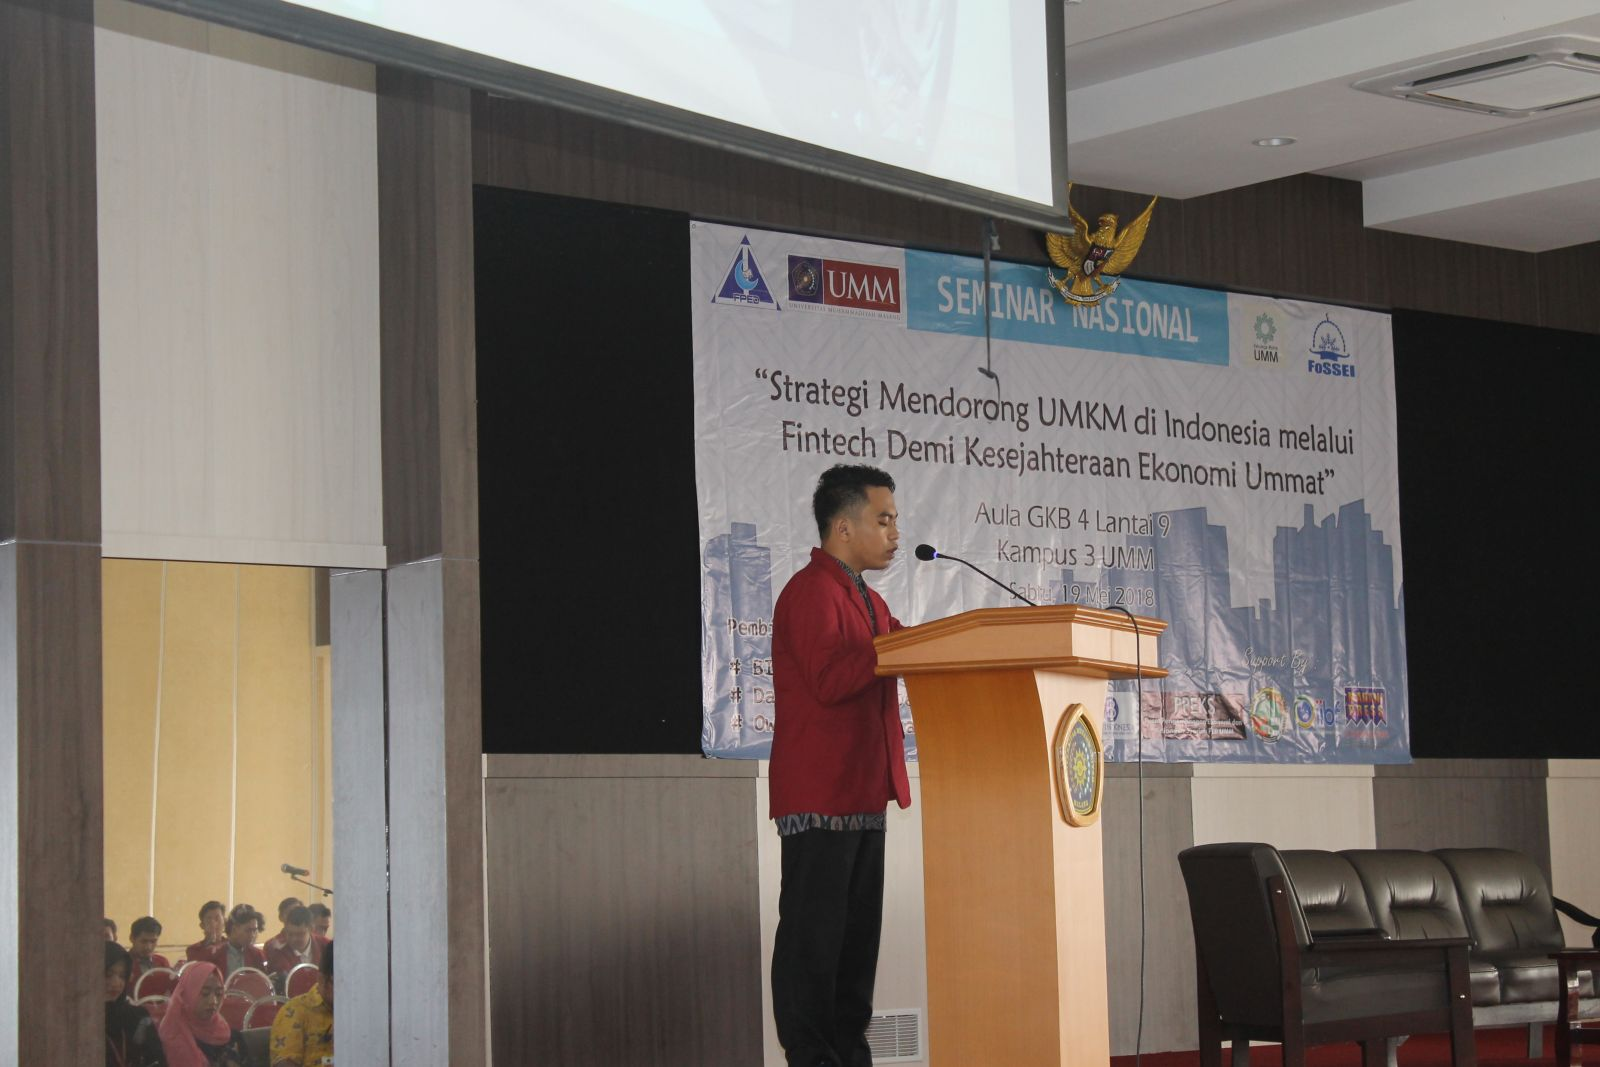 Fped Seminar Degree Technology Encourages Umkm In Indonesia